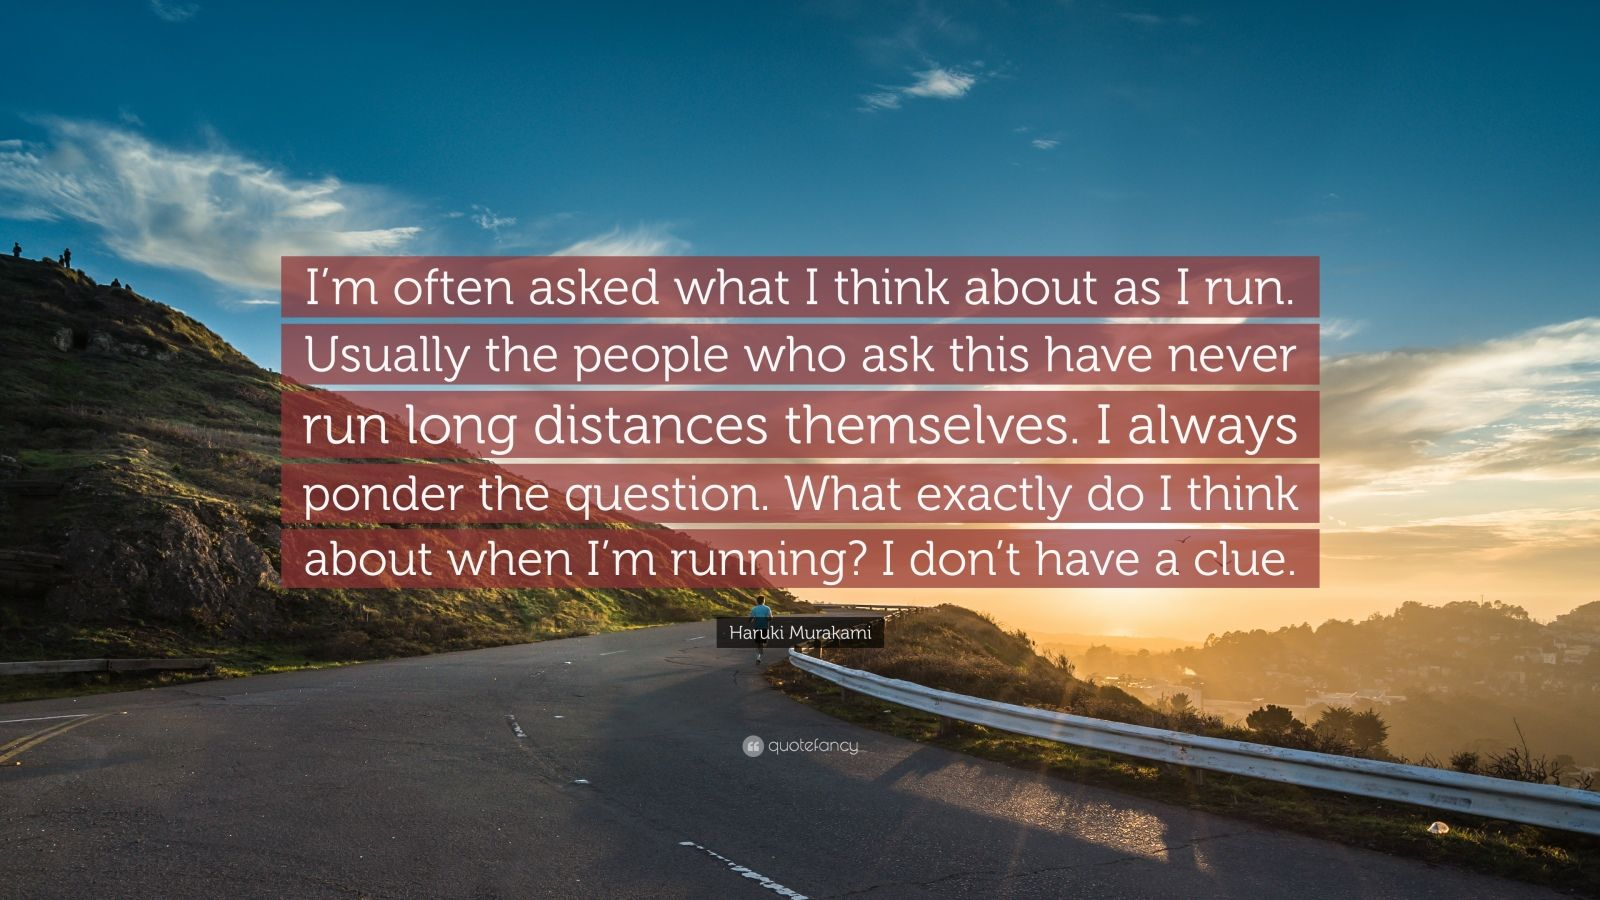 """Haruki Murakami Quote: """"I'm often asked what I think about as I run. Usually the people who ask this have never run long distances themselves. I always ponder the question. What exactly do I think about when I'm running? I don't have a clue."""""""